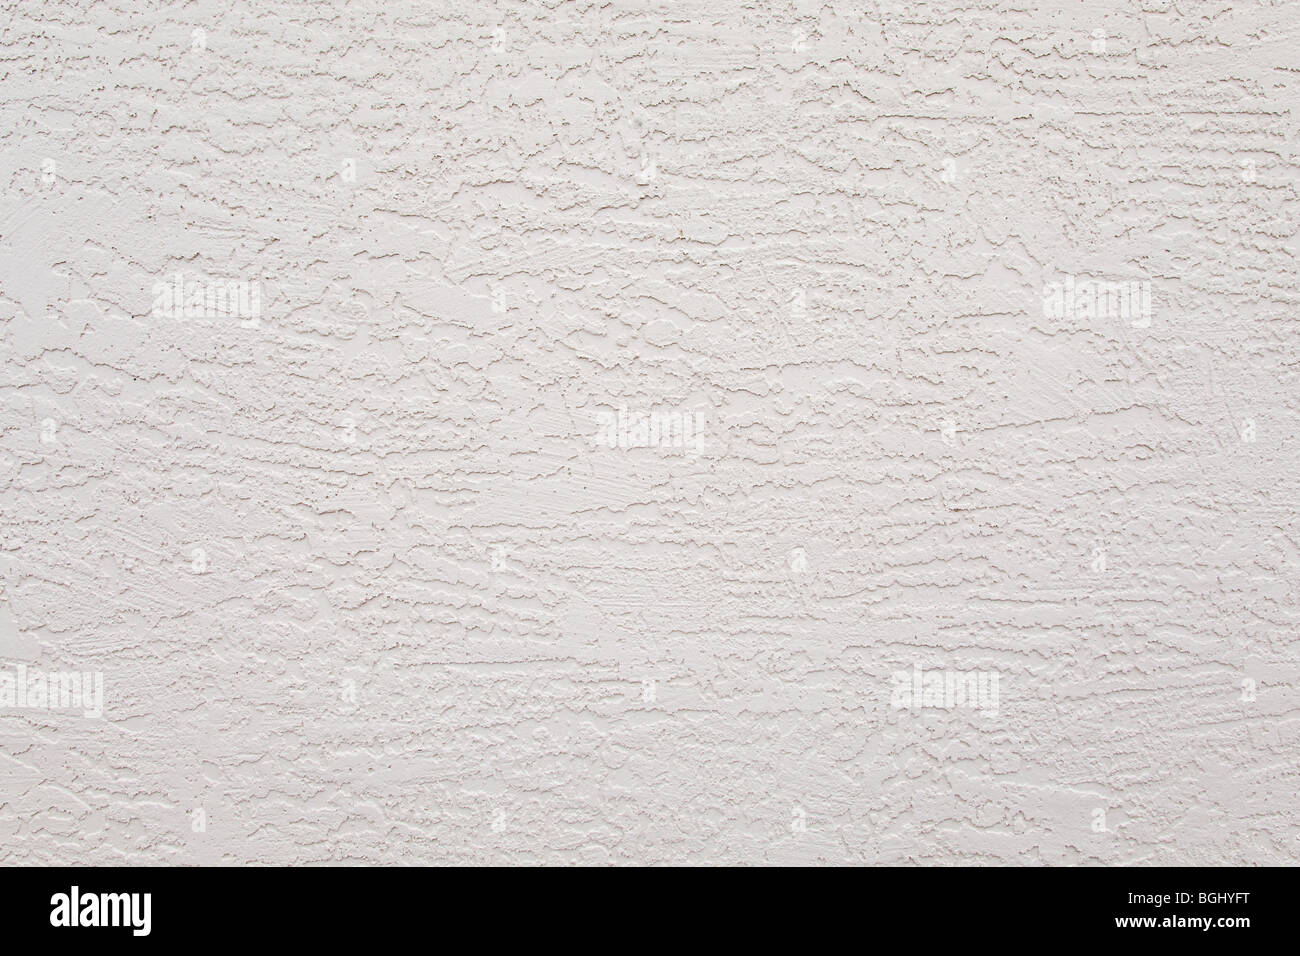 exterior white stucco wall rough background pattern - Stock Image